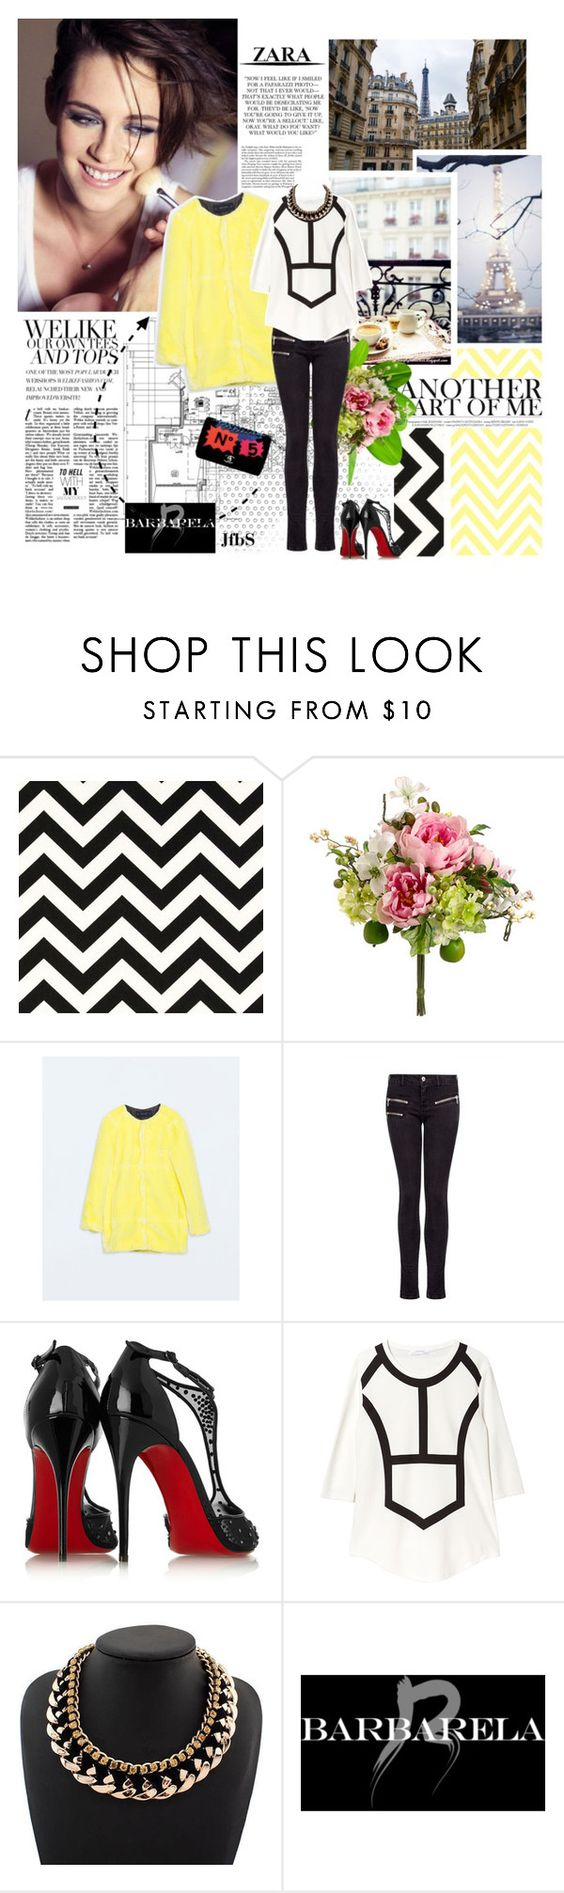 """""""#394 - Kristen Stewart """"Love, Live and Smile!"""""""" by jfbs ❤ liked on Polyvore featuring Zara, Prada, MANGO, Christian Louboutin, Chanel and barbarelajewelry"""